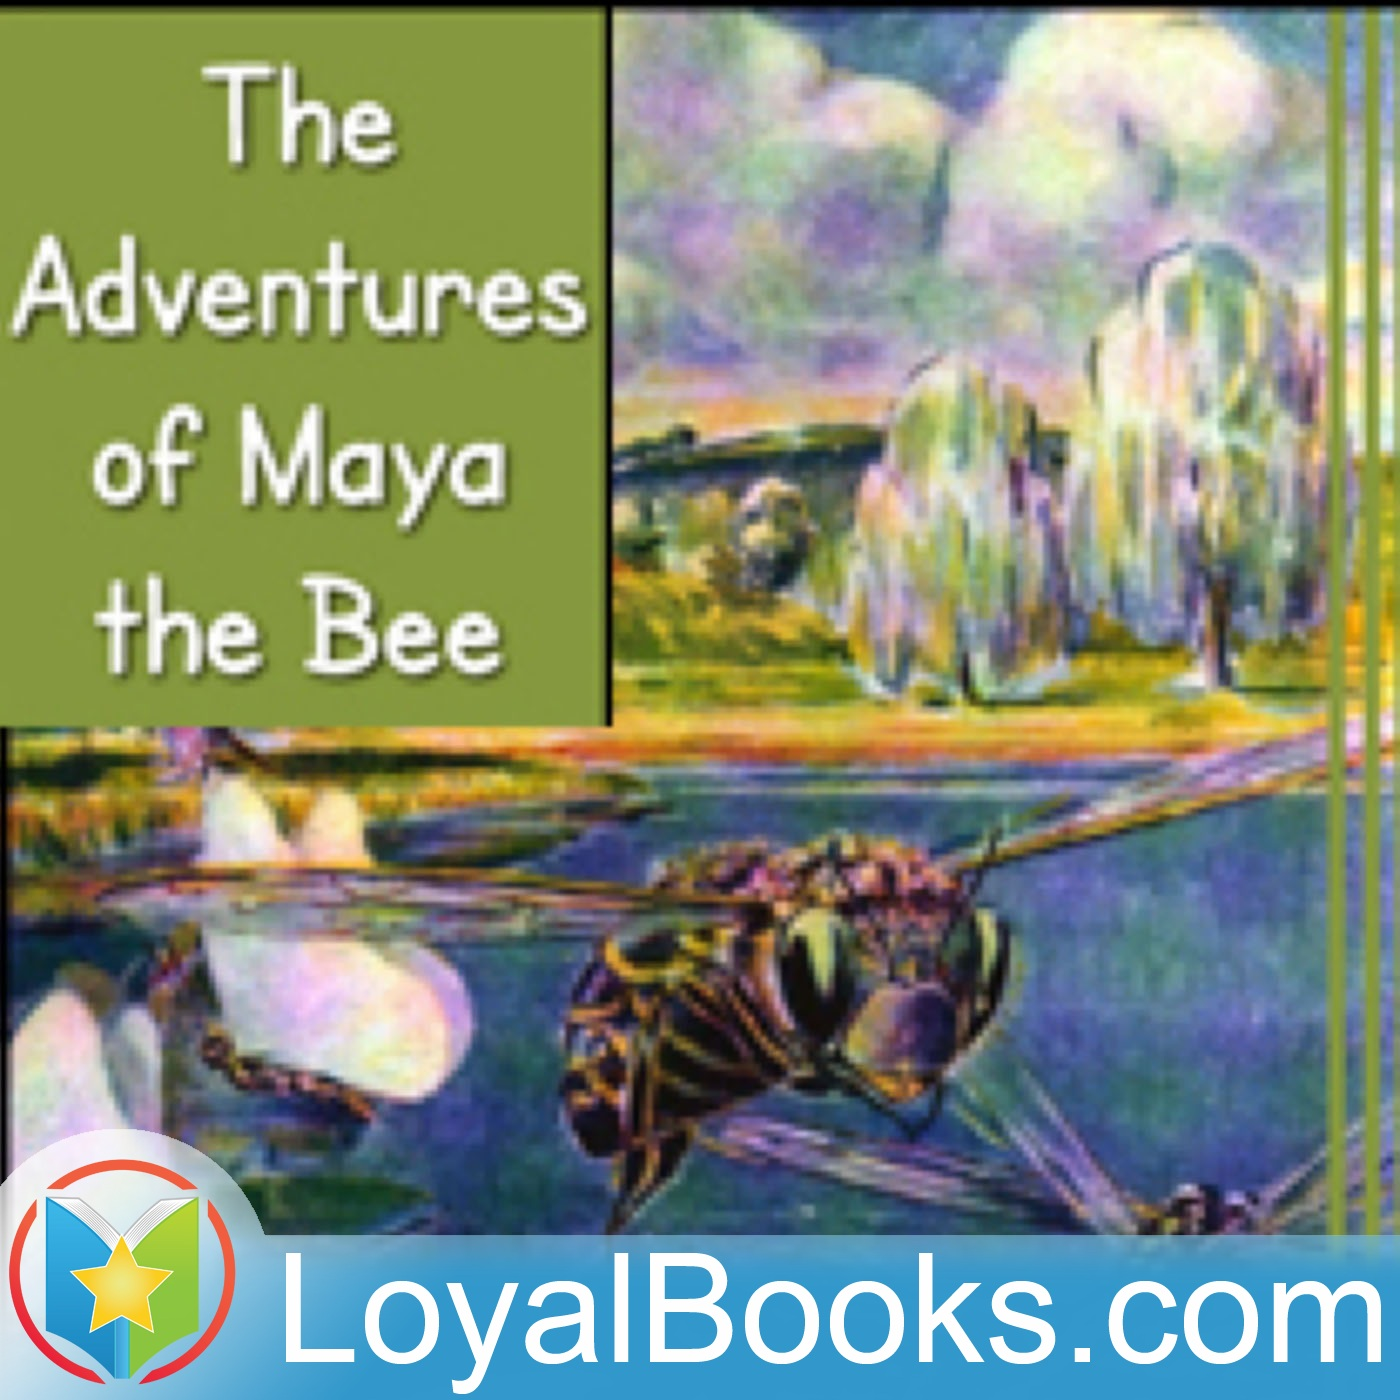 <![CDATA[The Adventures of Maya the Bee by Waldemar Bonsels]]>